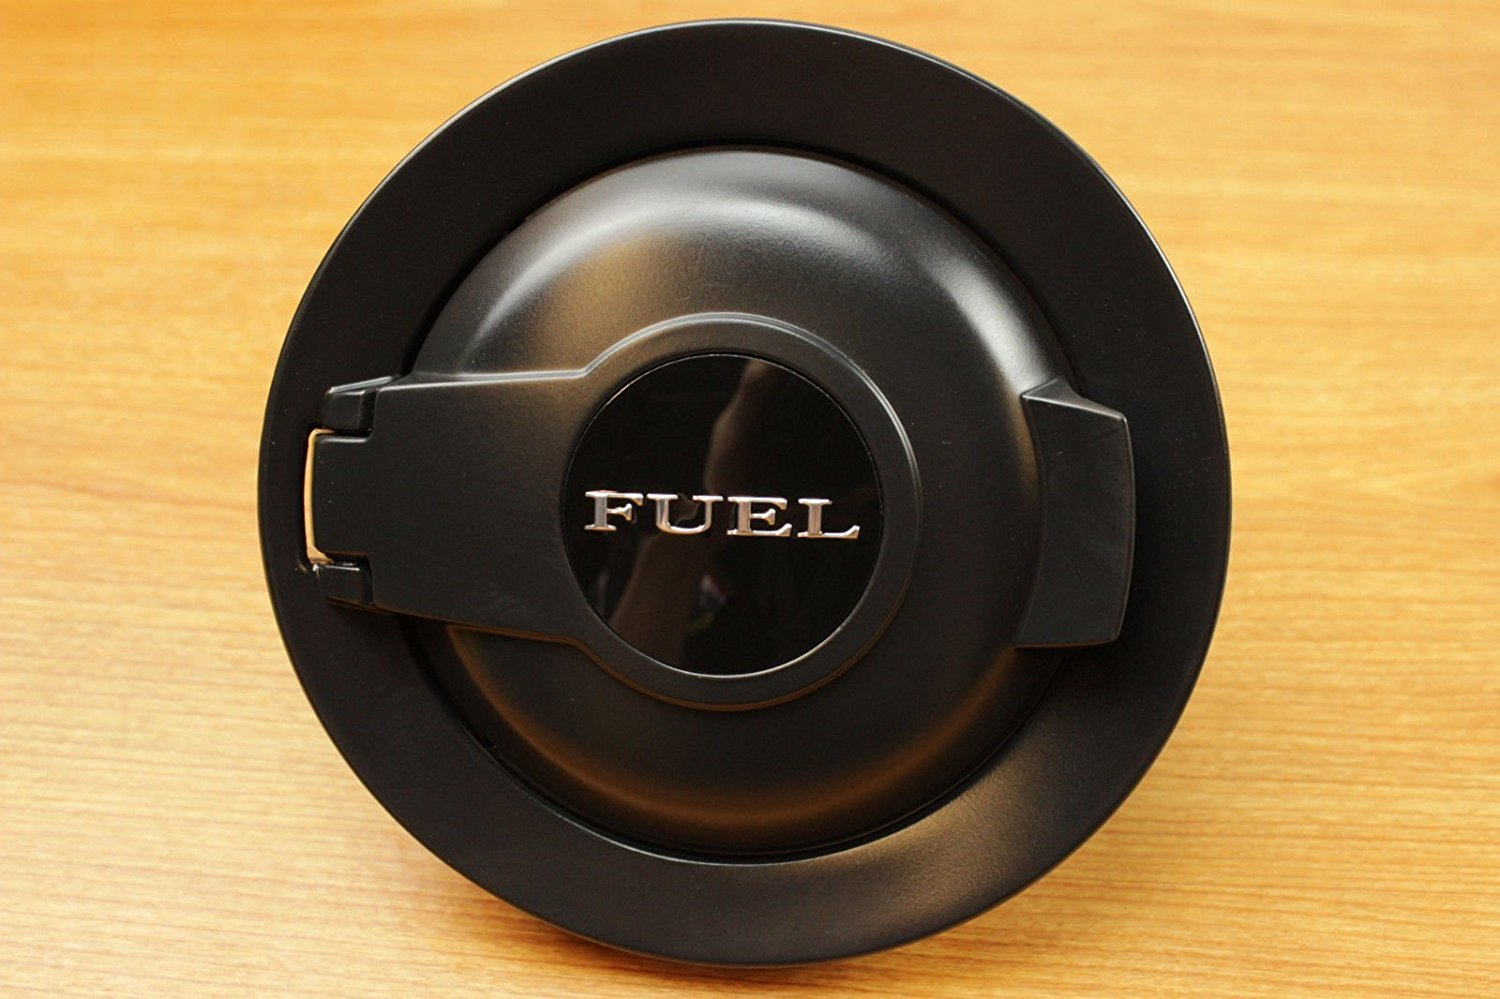 Dodge Challenger Matte Black Vapor Edition Fuel Filler Door Mopar OEM by Mopar